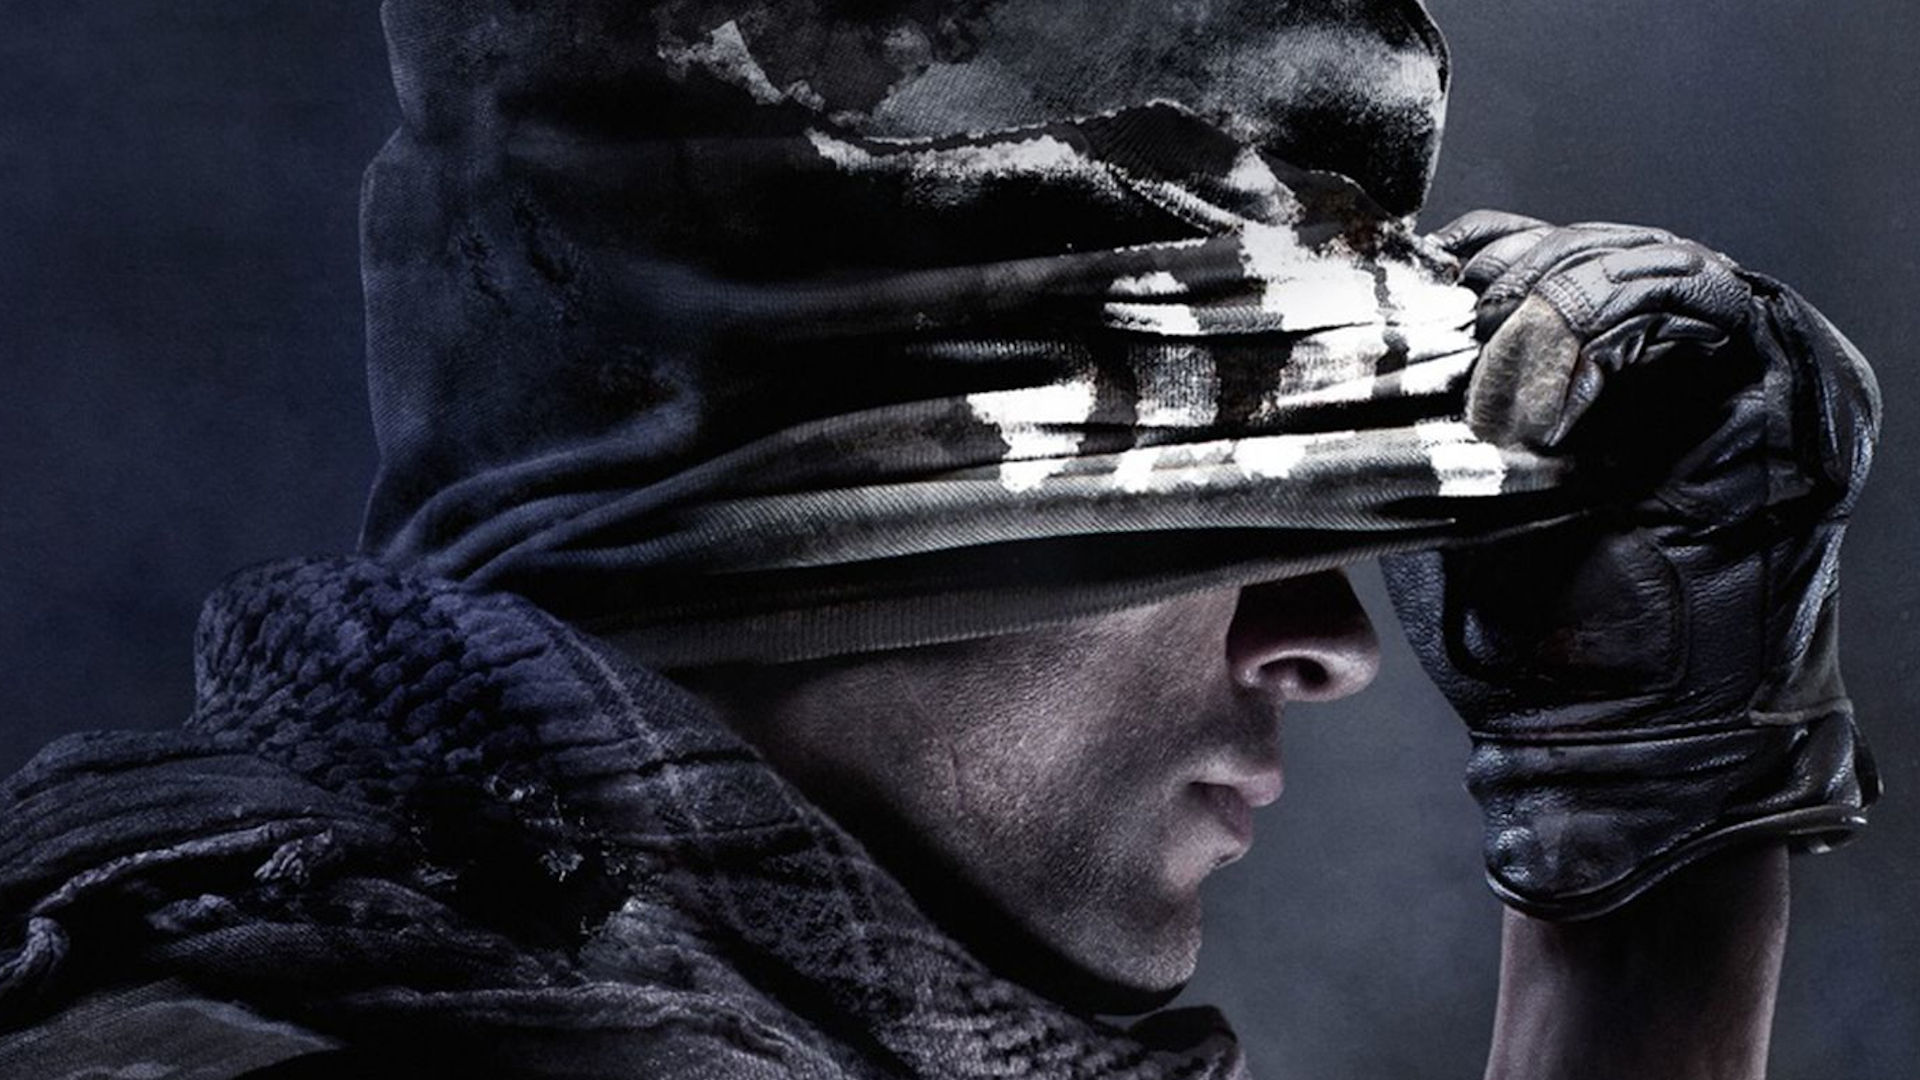 I played the worst Call of Duty in 2021 and deserved what I got